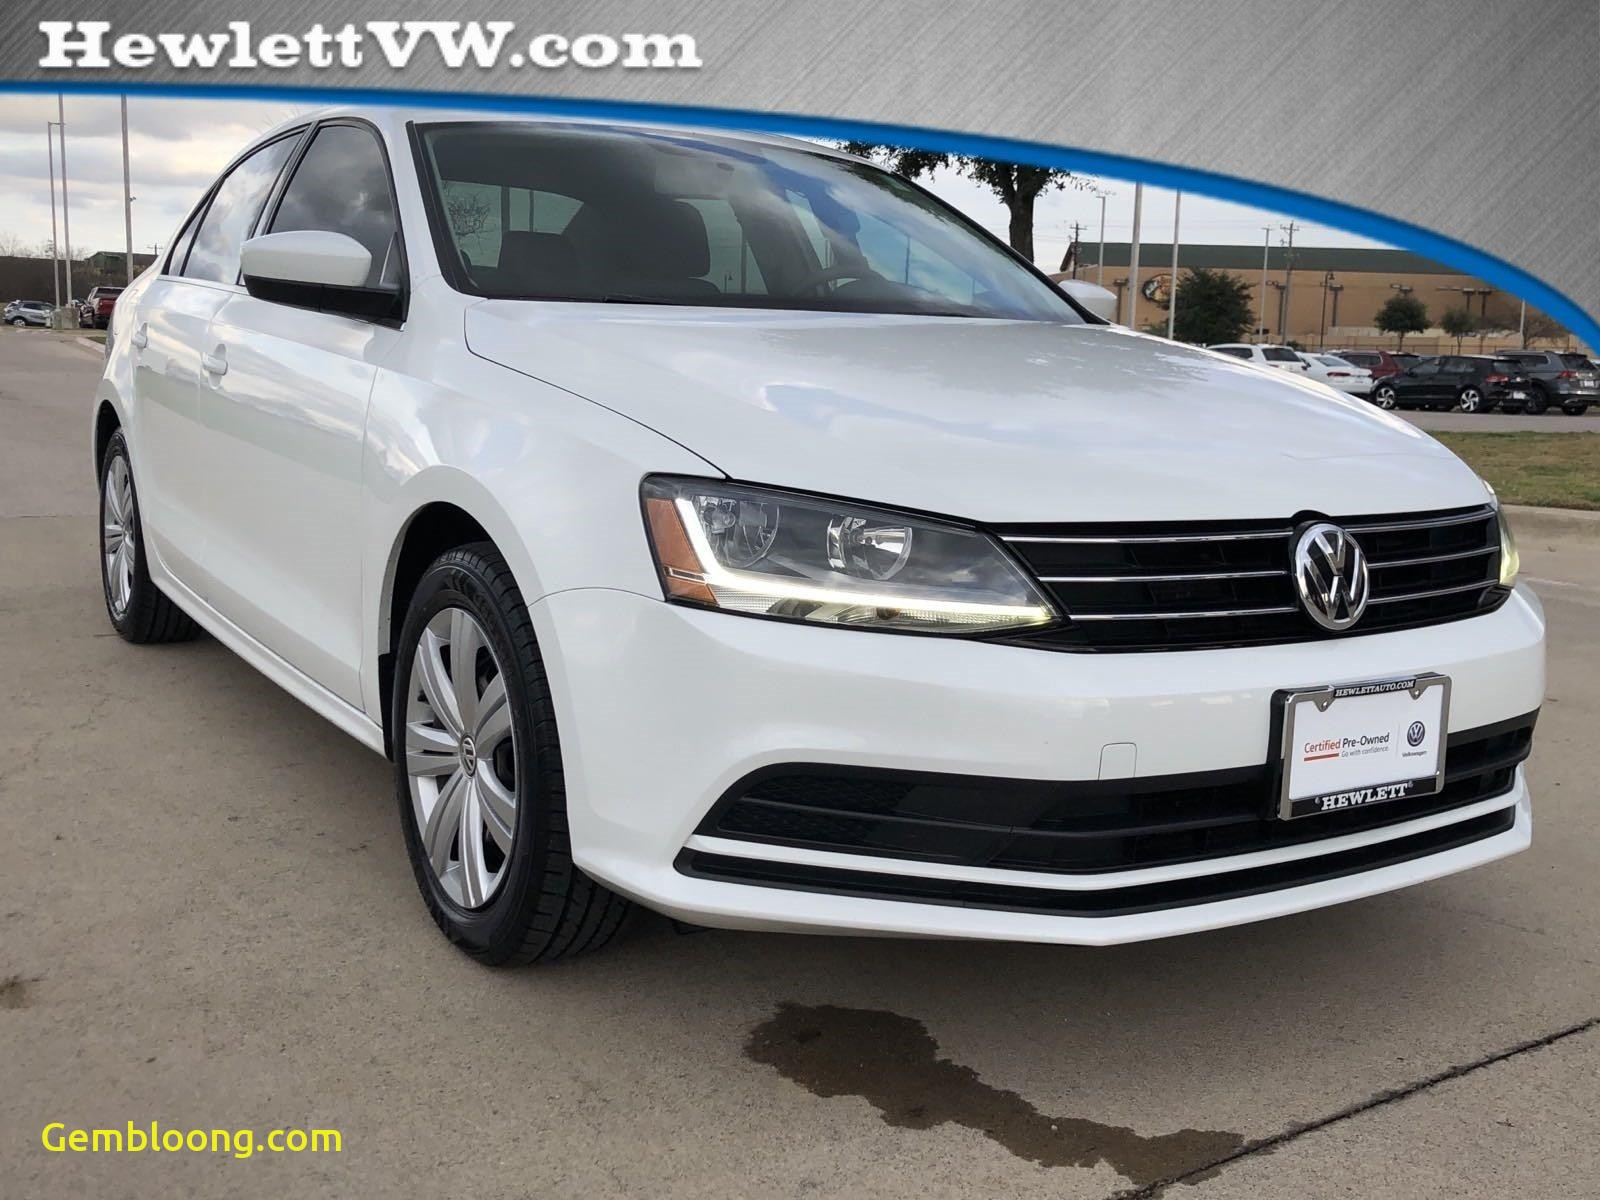 Cars for Sale Near Me Volkswagen Inspirational Used for Sale Near Me Geor Own to Austin Tx